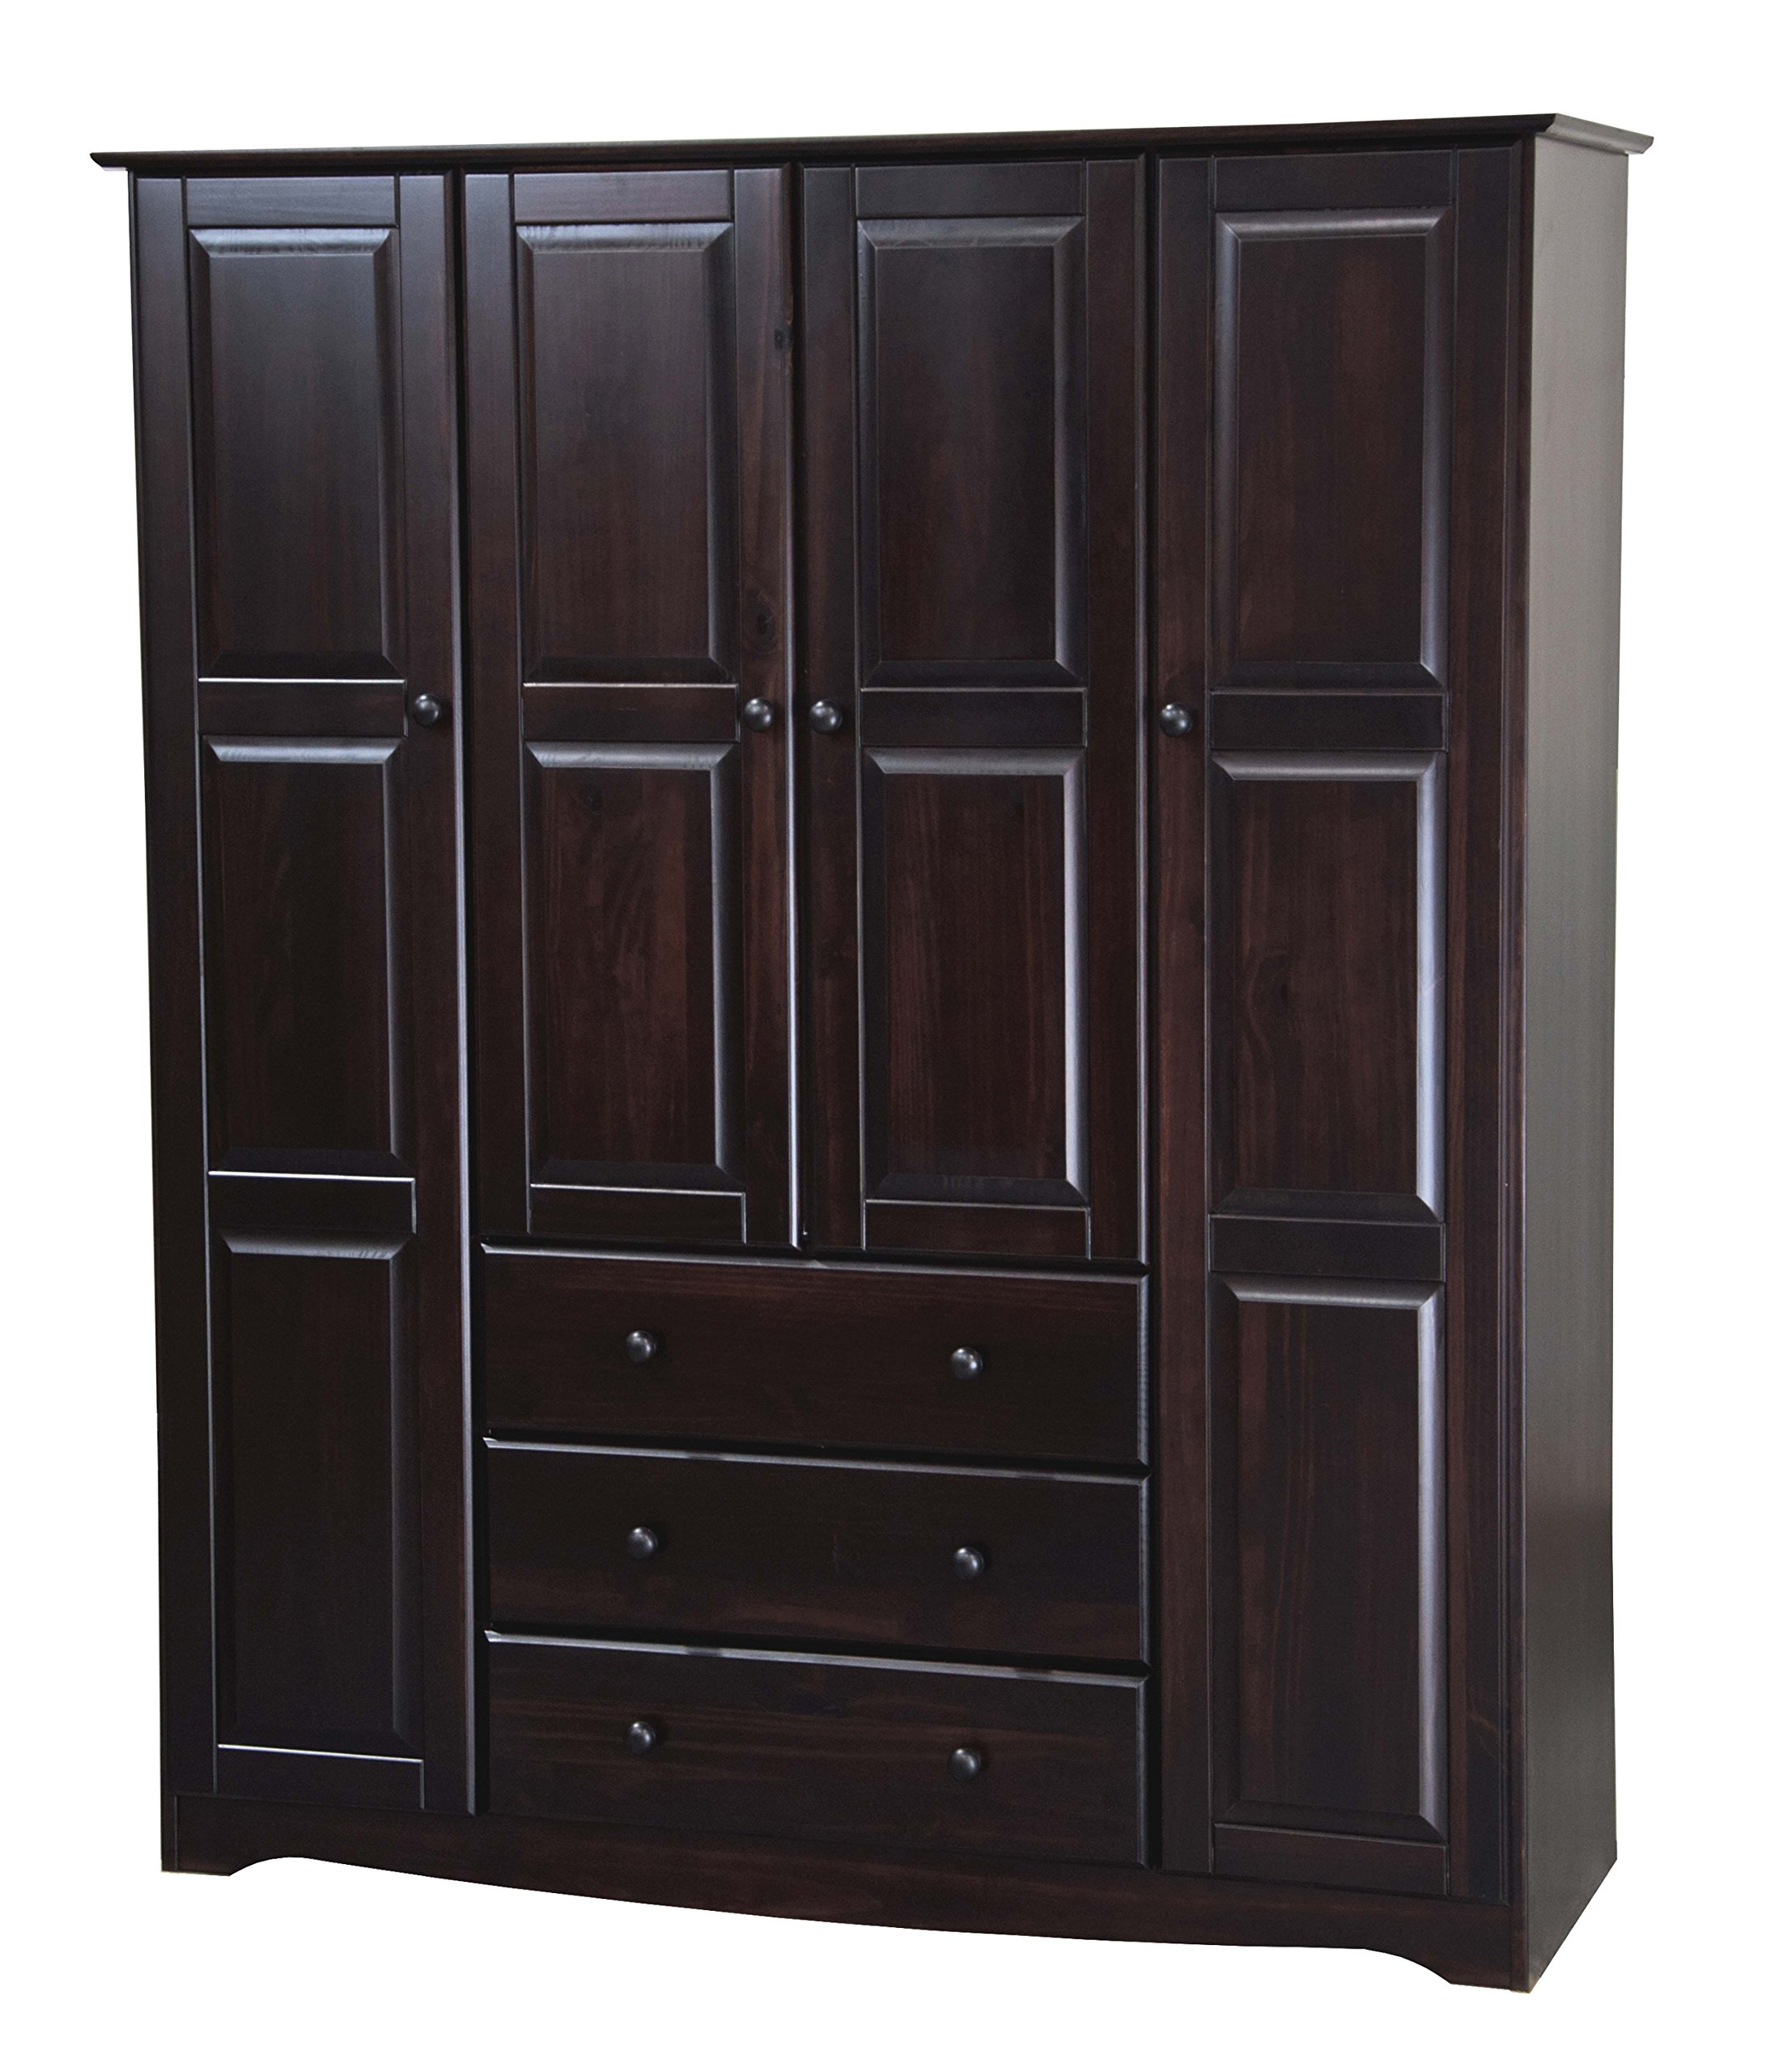 New! 100% Solid Wood Family Wardrobe/Armoire/Closet 5966 by Palace Imports, Java, 60'' W x 72'' H x 21'' D. 3 Clothing Rods Included. Optional Small and Large Shelves Sold Separately.